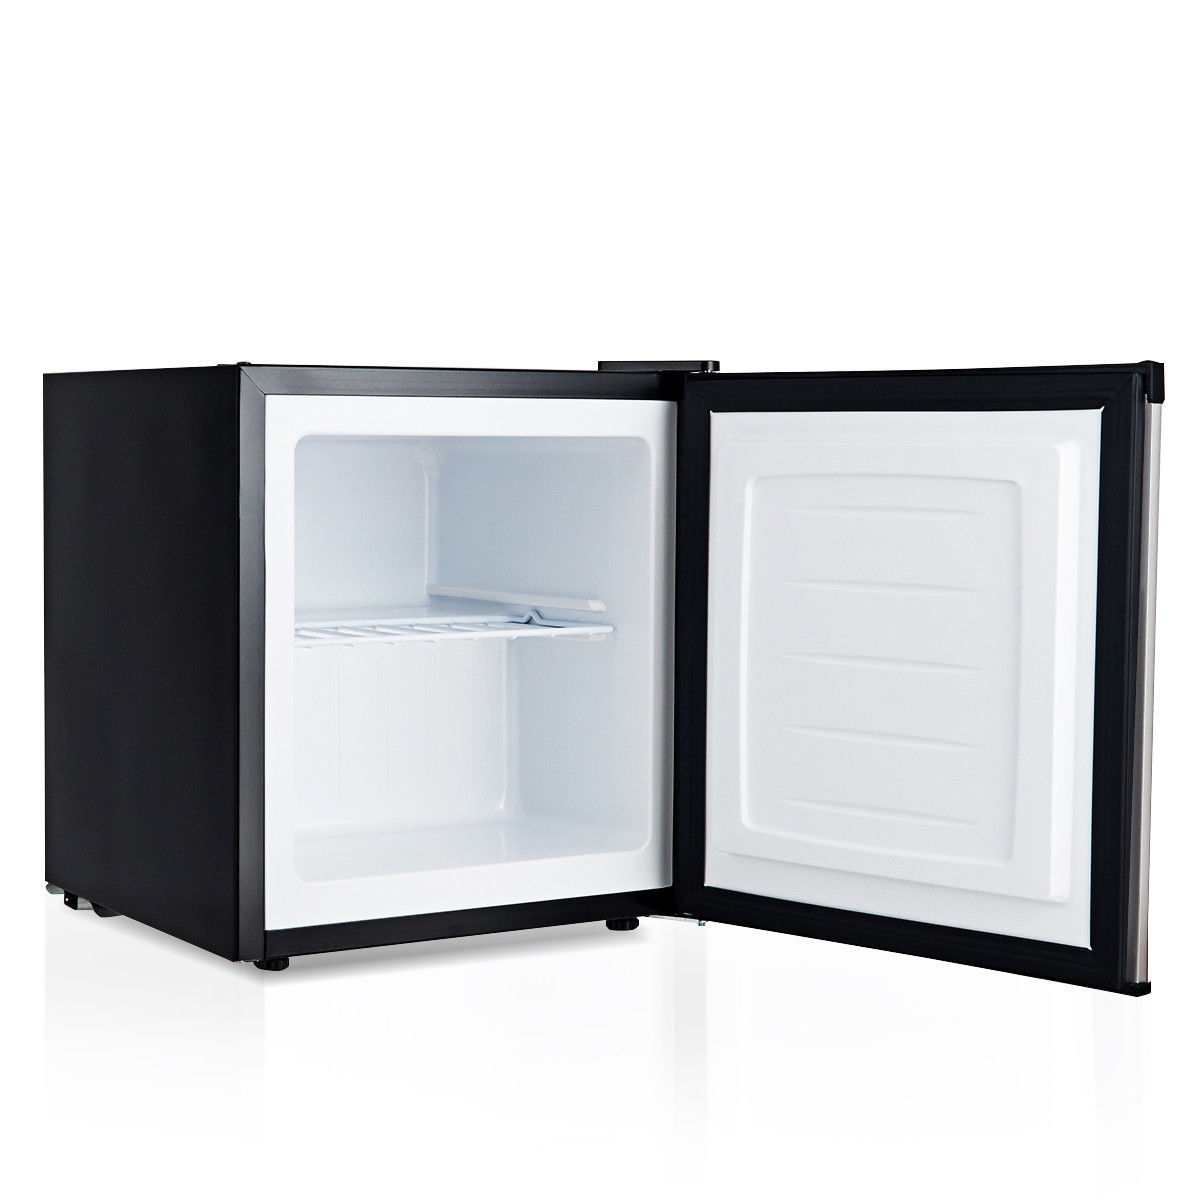 This is the compact but spacious upright freezer which can provide you a lot of storage. This stainless steel freezer fits in any small space where cold storage is needed. This space-saving compact upright freezer is designed with a flush back, allowing it to fit cleanly against the wall or into corners. The adjustable leveling leg can fit unique spaces and store all your go-to foods in an accessible wire pullout shelf. The adjustable thermostat can meet all your needs while keep your energy costs down. If you are looking for a freezer like that, don't hesitate to buy it. Freestanding setup design with 1.1 cubic feet capacity Stainless door and black cabinet presents a sleek and clean look Adjustable 7-grade temperature control to select your desired temperature Approximate temperature range of -8°f to 7°f A removable slide-out chrome shelf for your storage needs Classification storage decreases taint of odor and easy to locate food Recessed